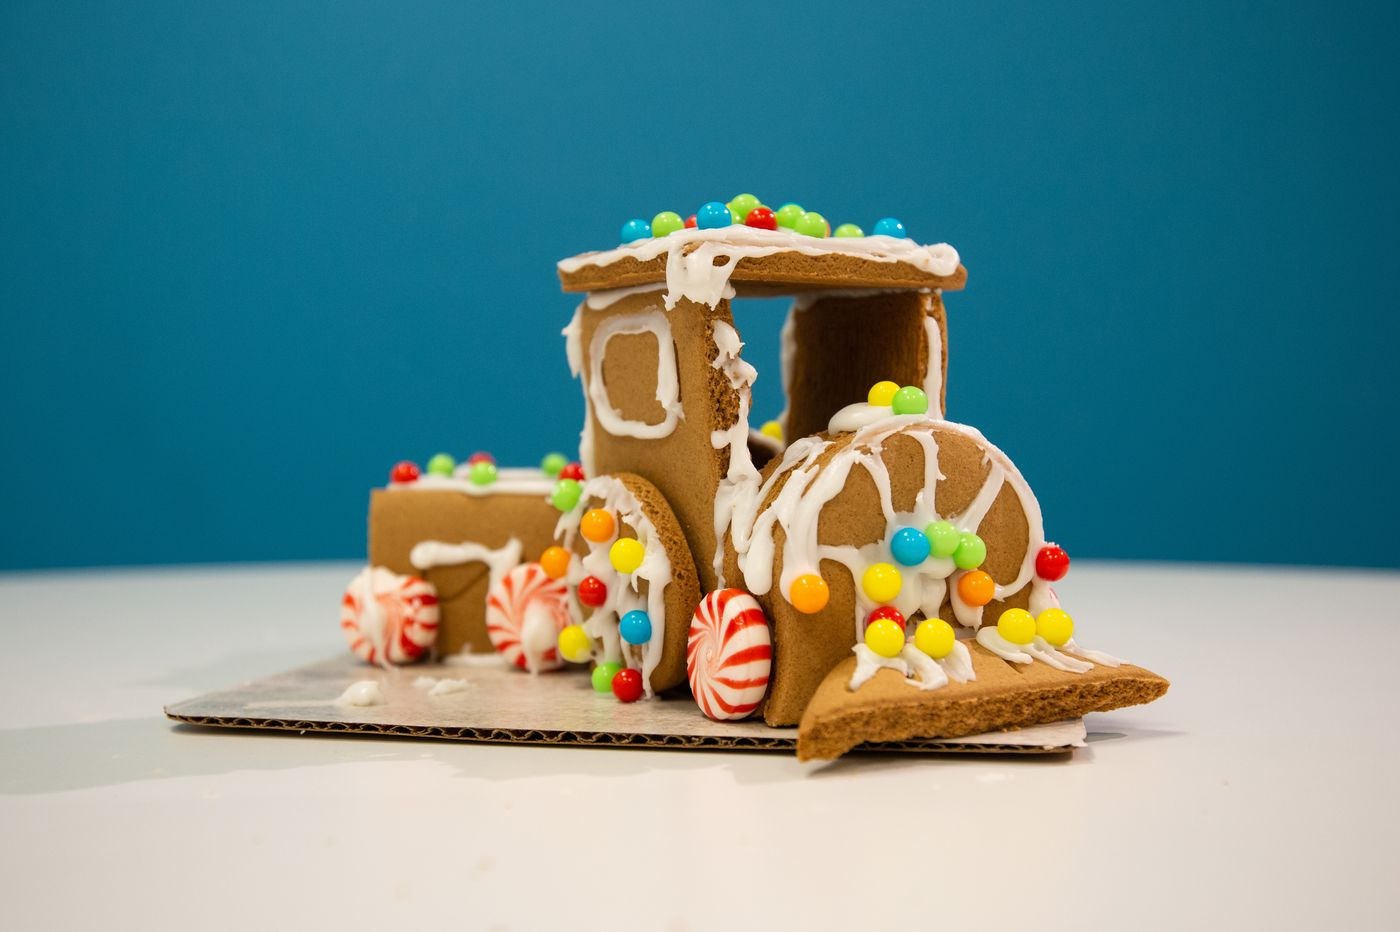 How to build your best gingerbread house this holiday season